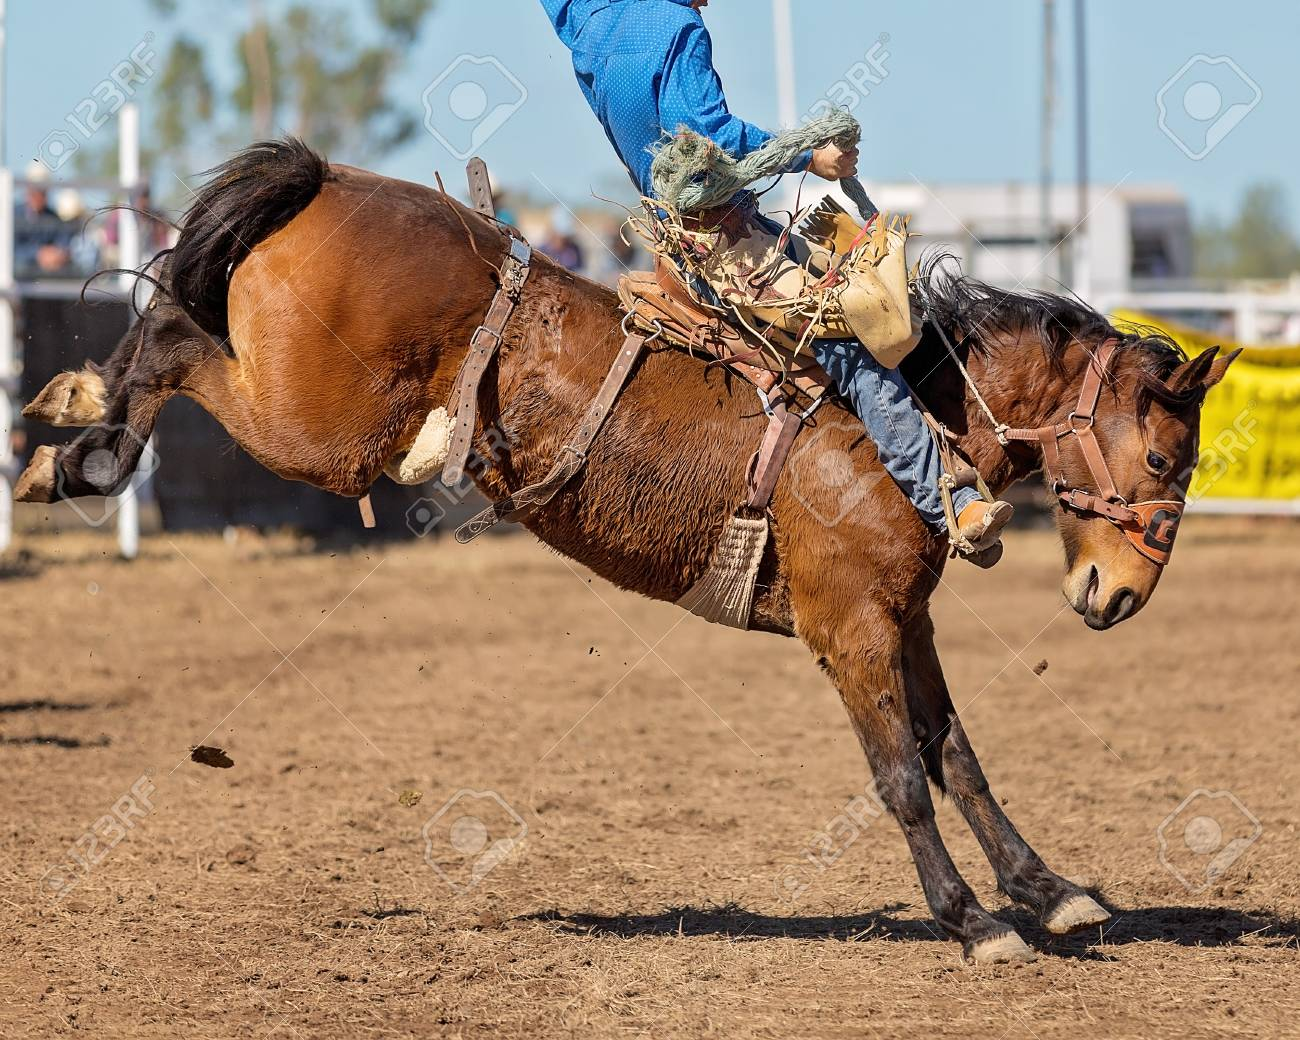 A cowboy riding a bucking bronco horse in a competition at a country rodeo stock photo